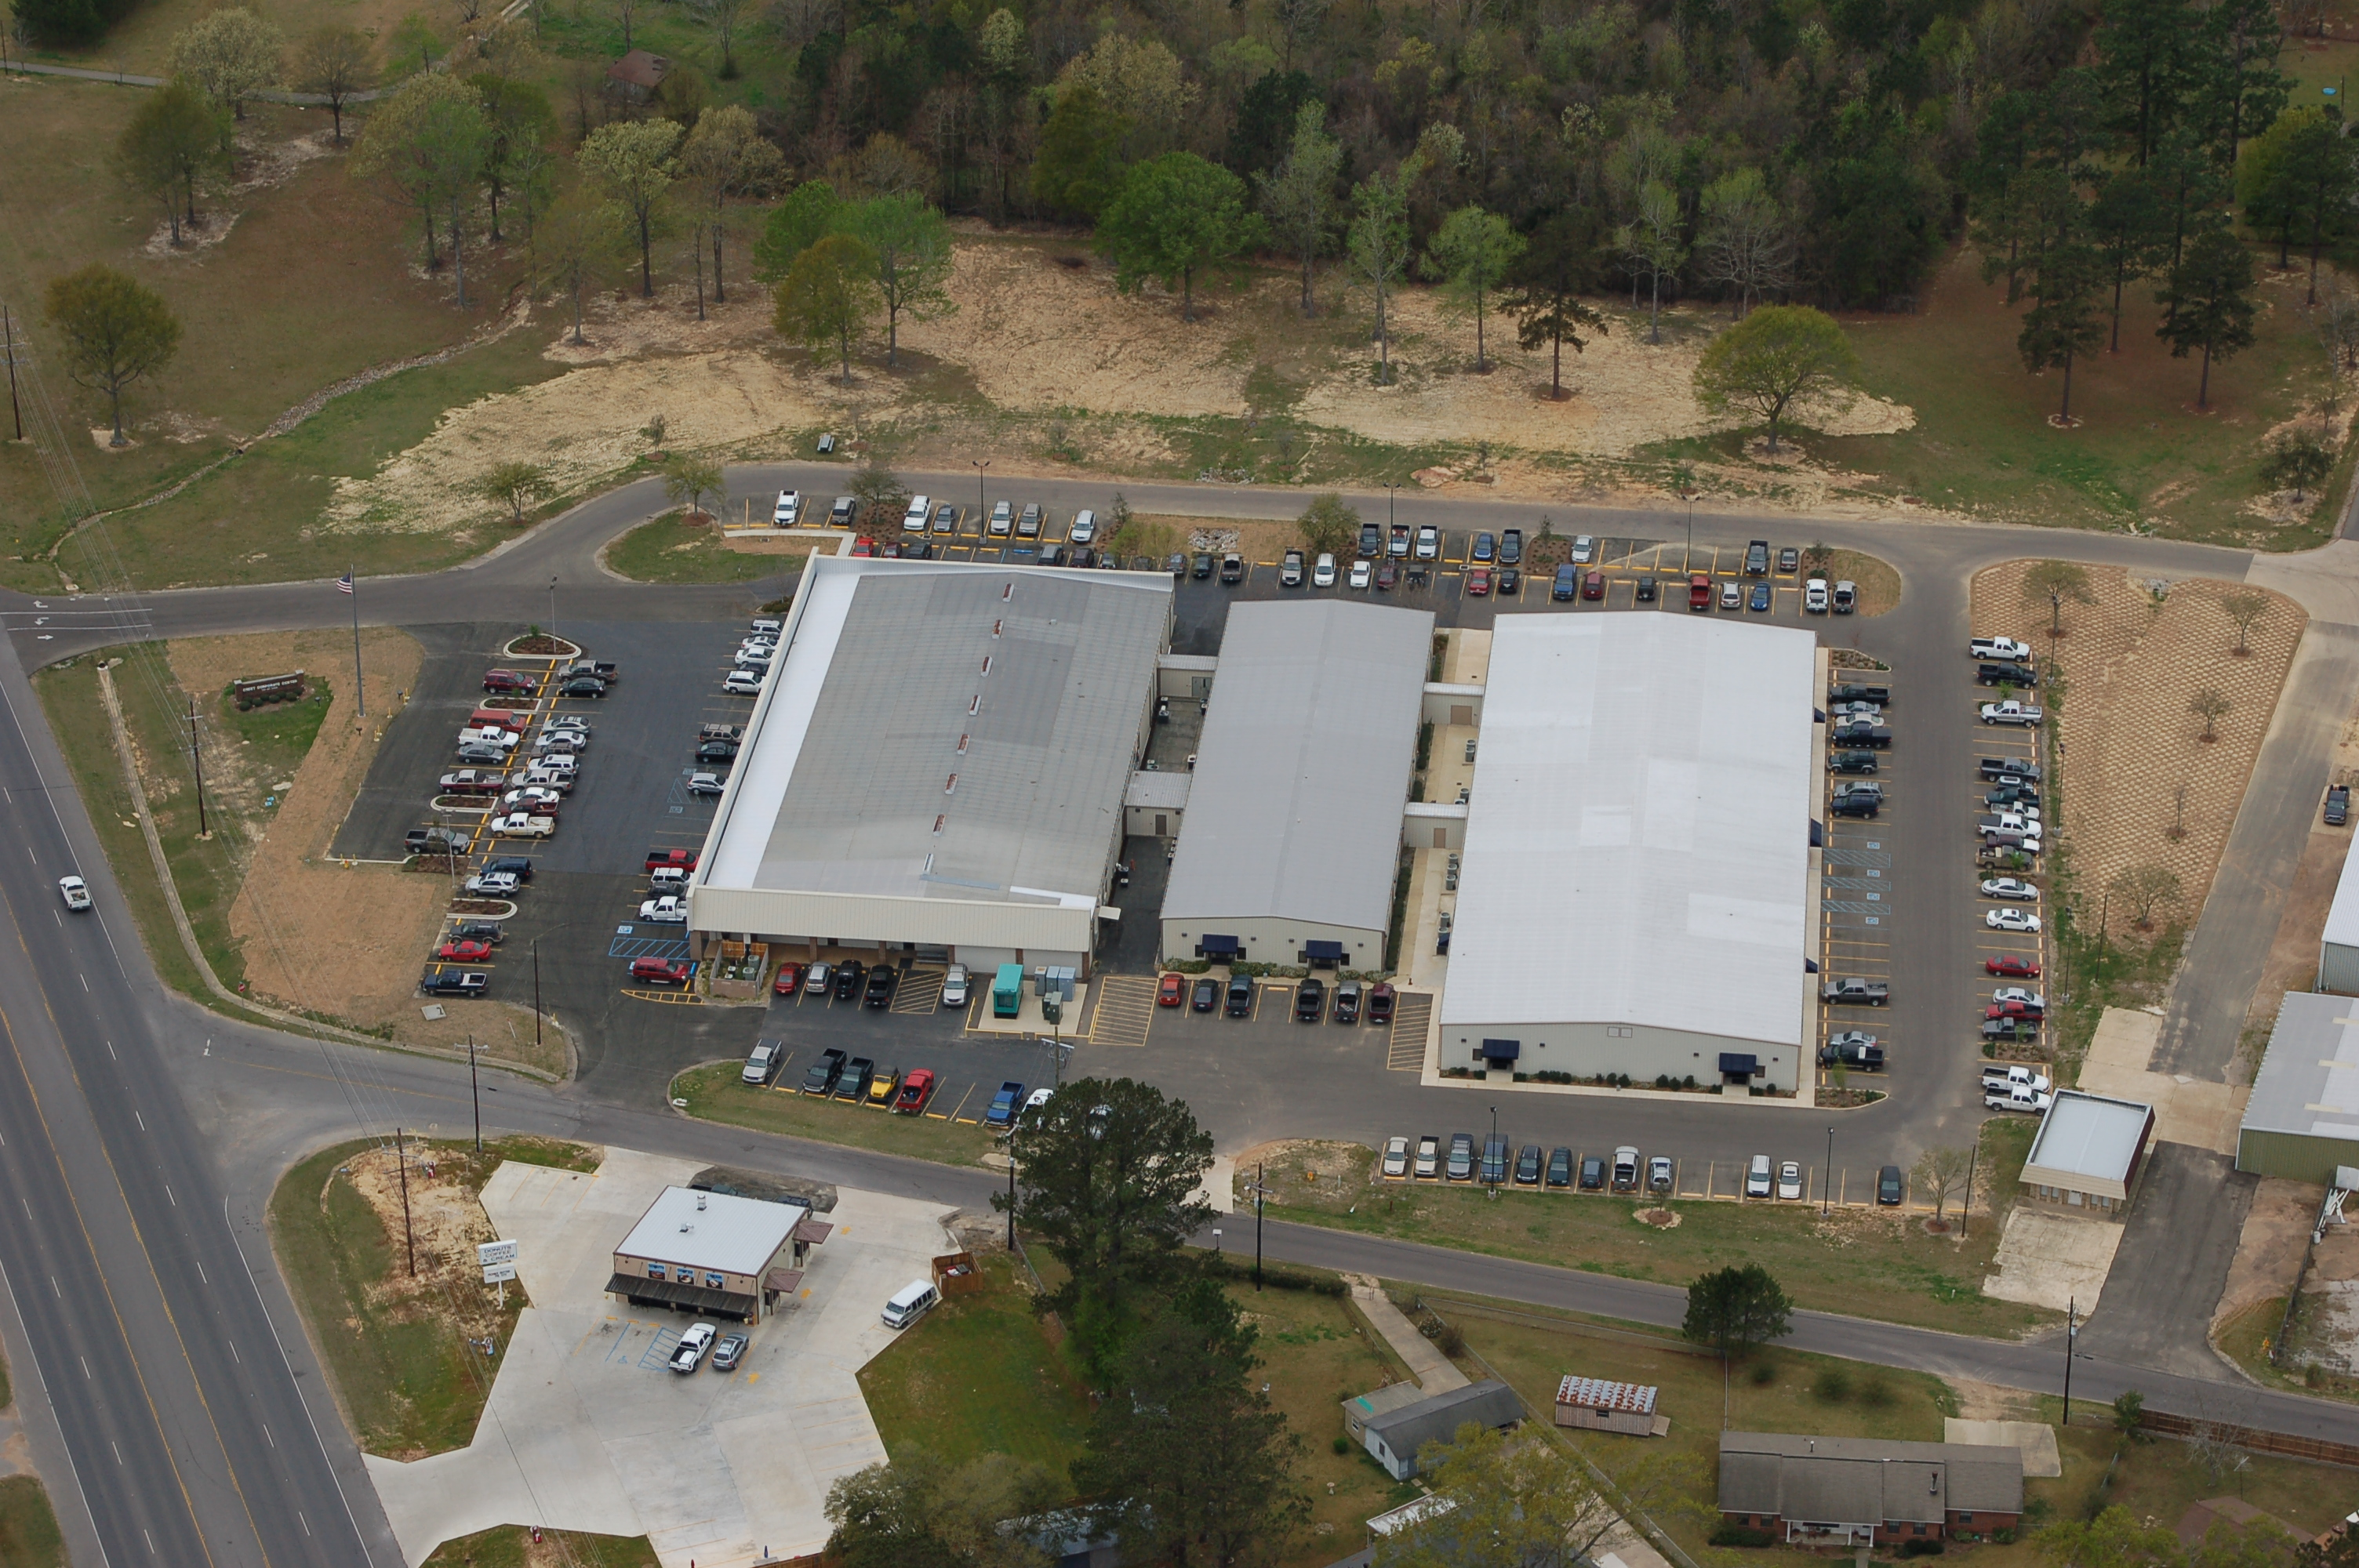 Aerial view of Crest Industries, LLC including DIS-TRAN Steel, DIS-TRAN Wood Products, DIS-TRAN Packaged Substations, BETA.